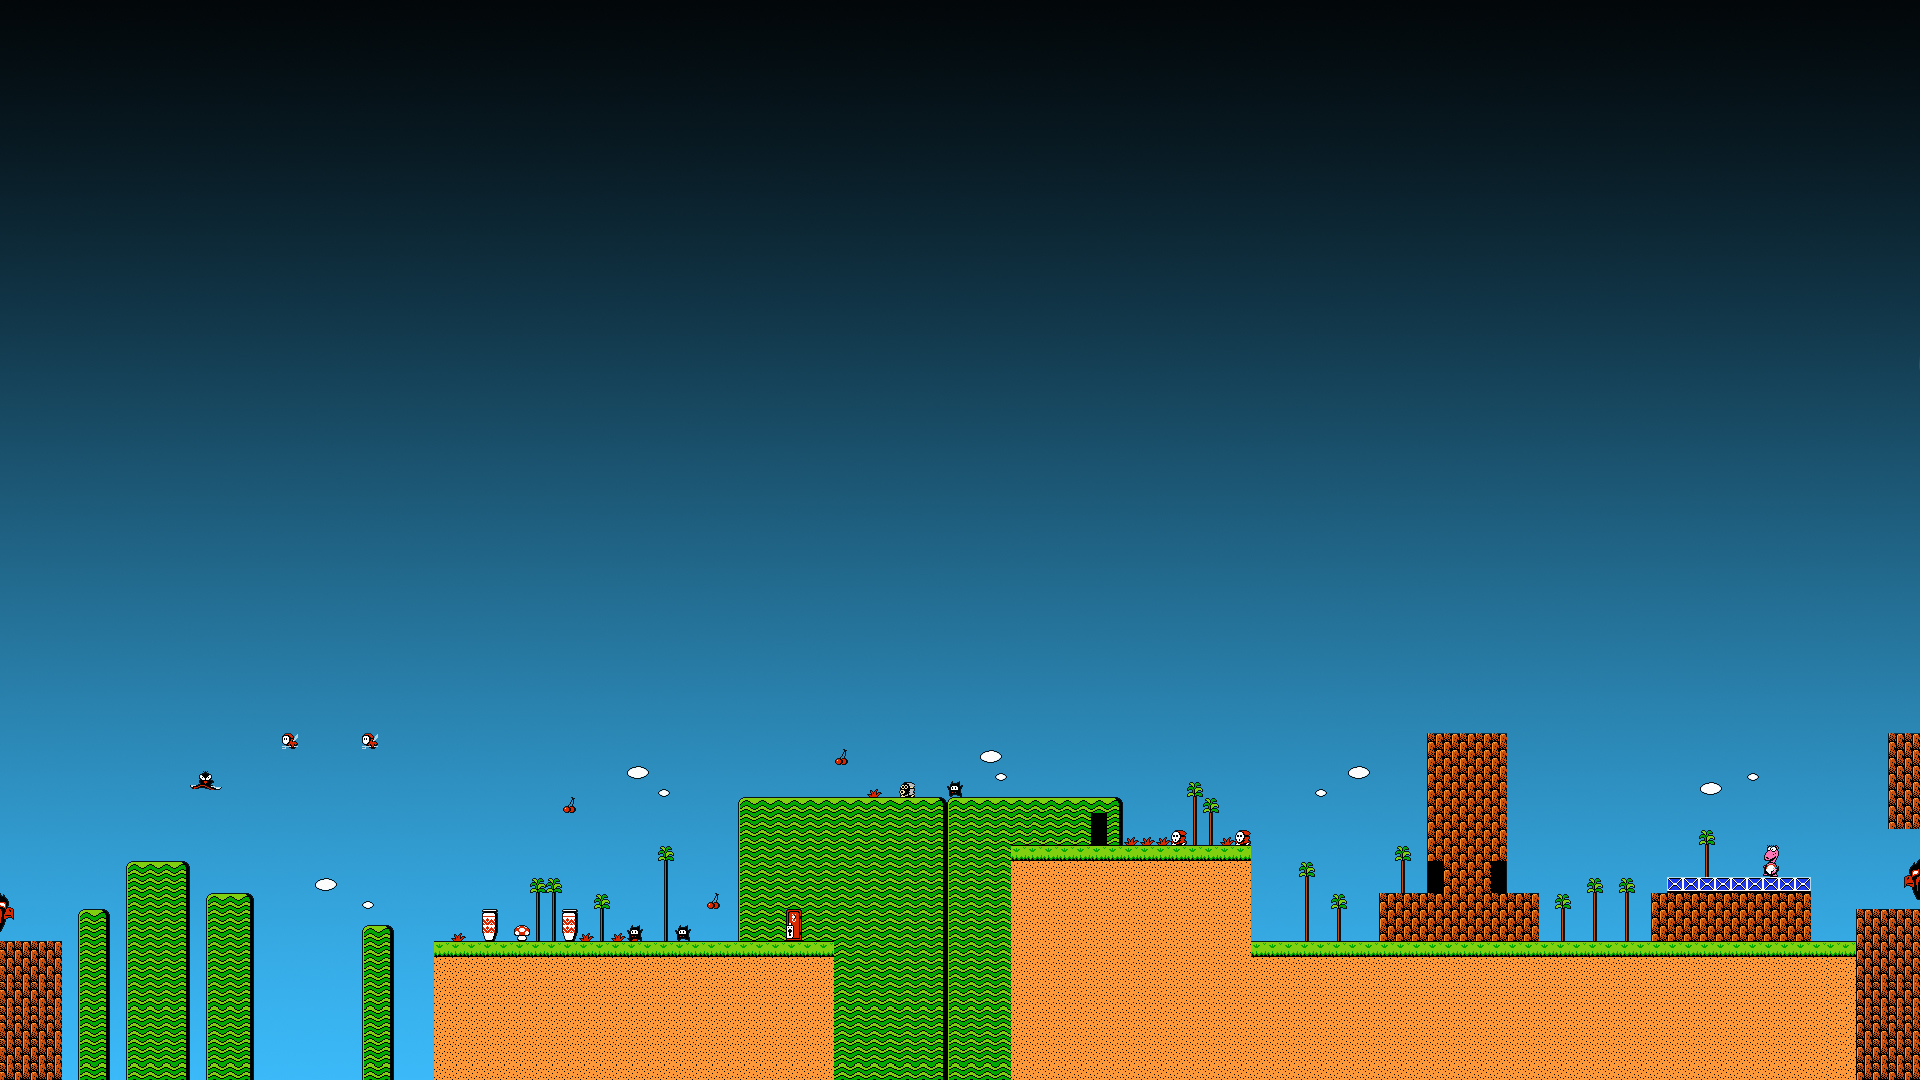 Super Mario Bros. 2 - 1-1 Wallpaper - HD 1080p by ColinPlox